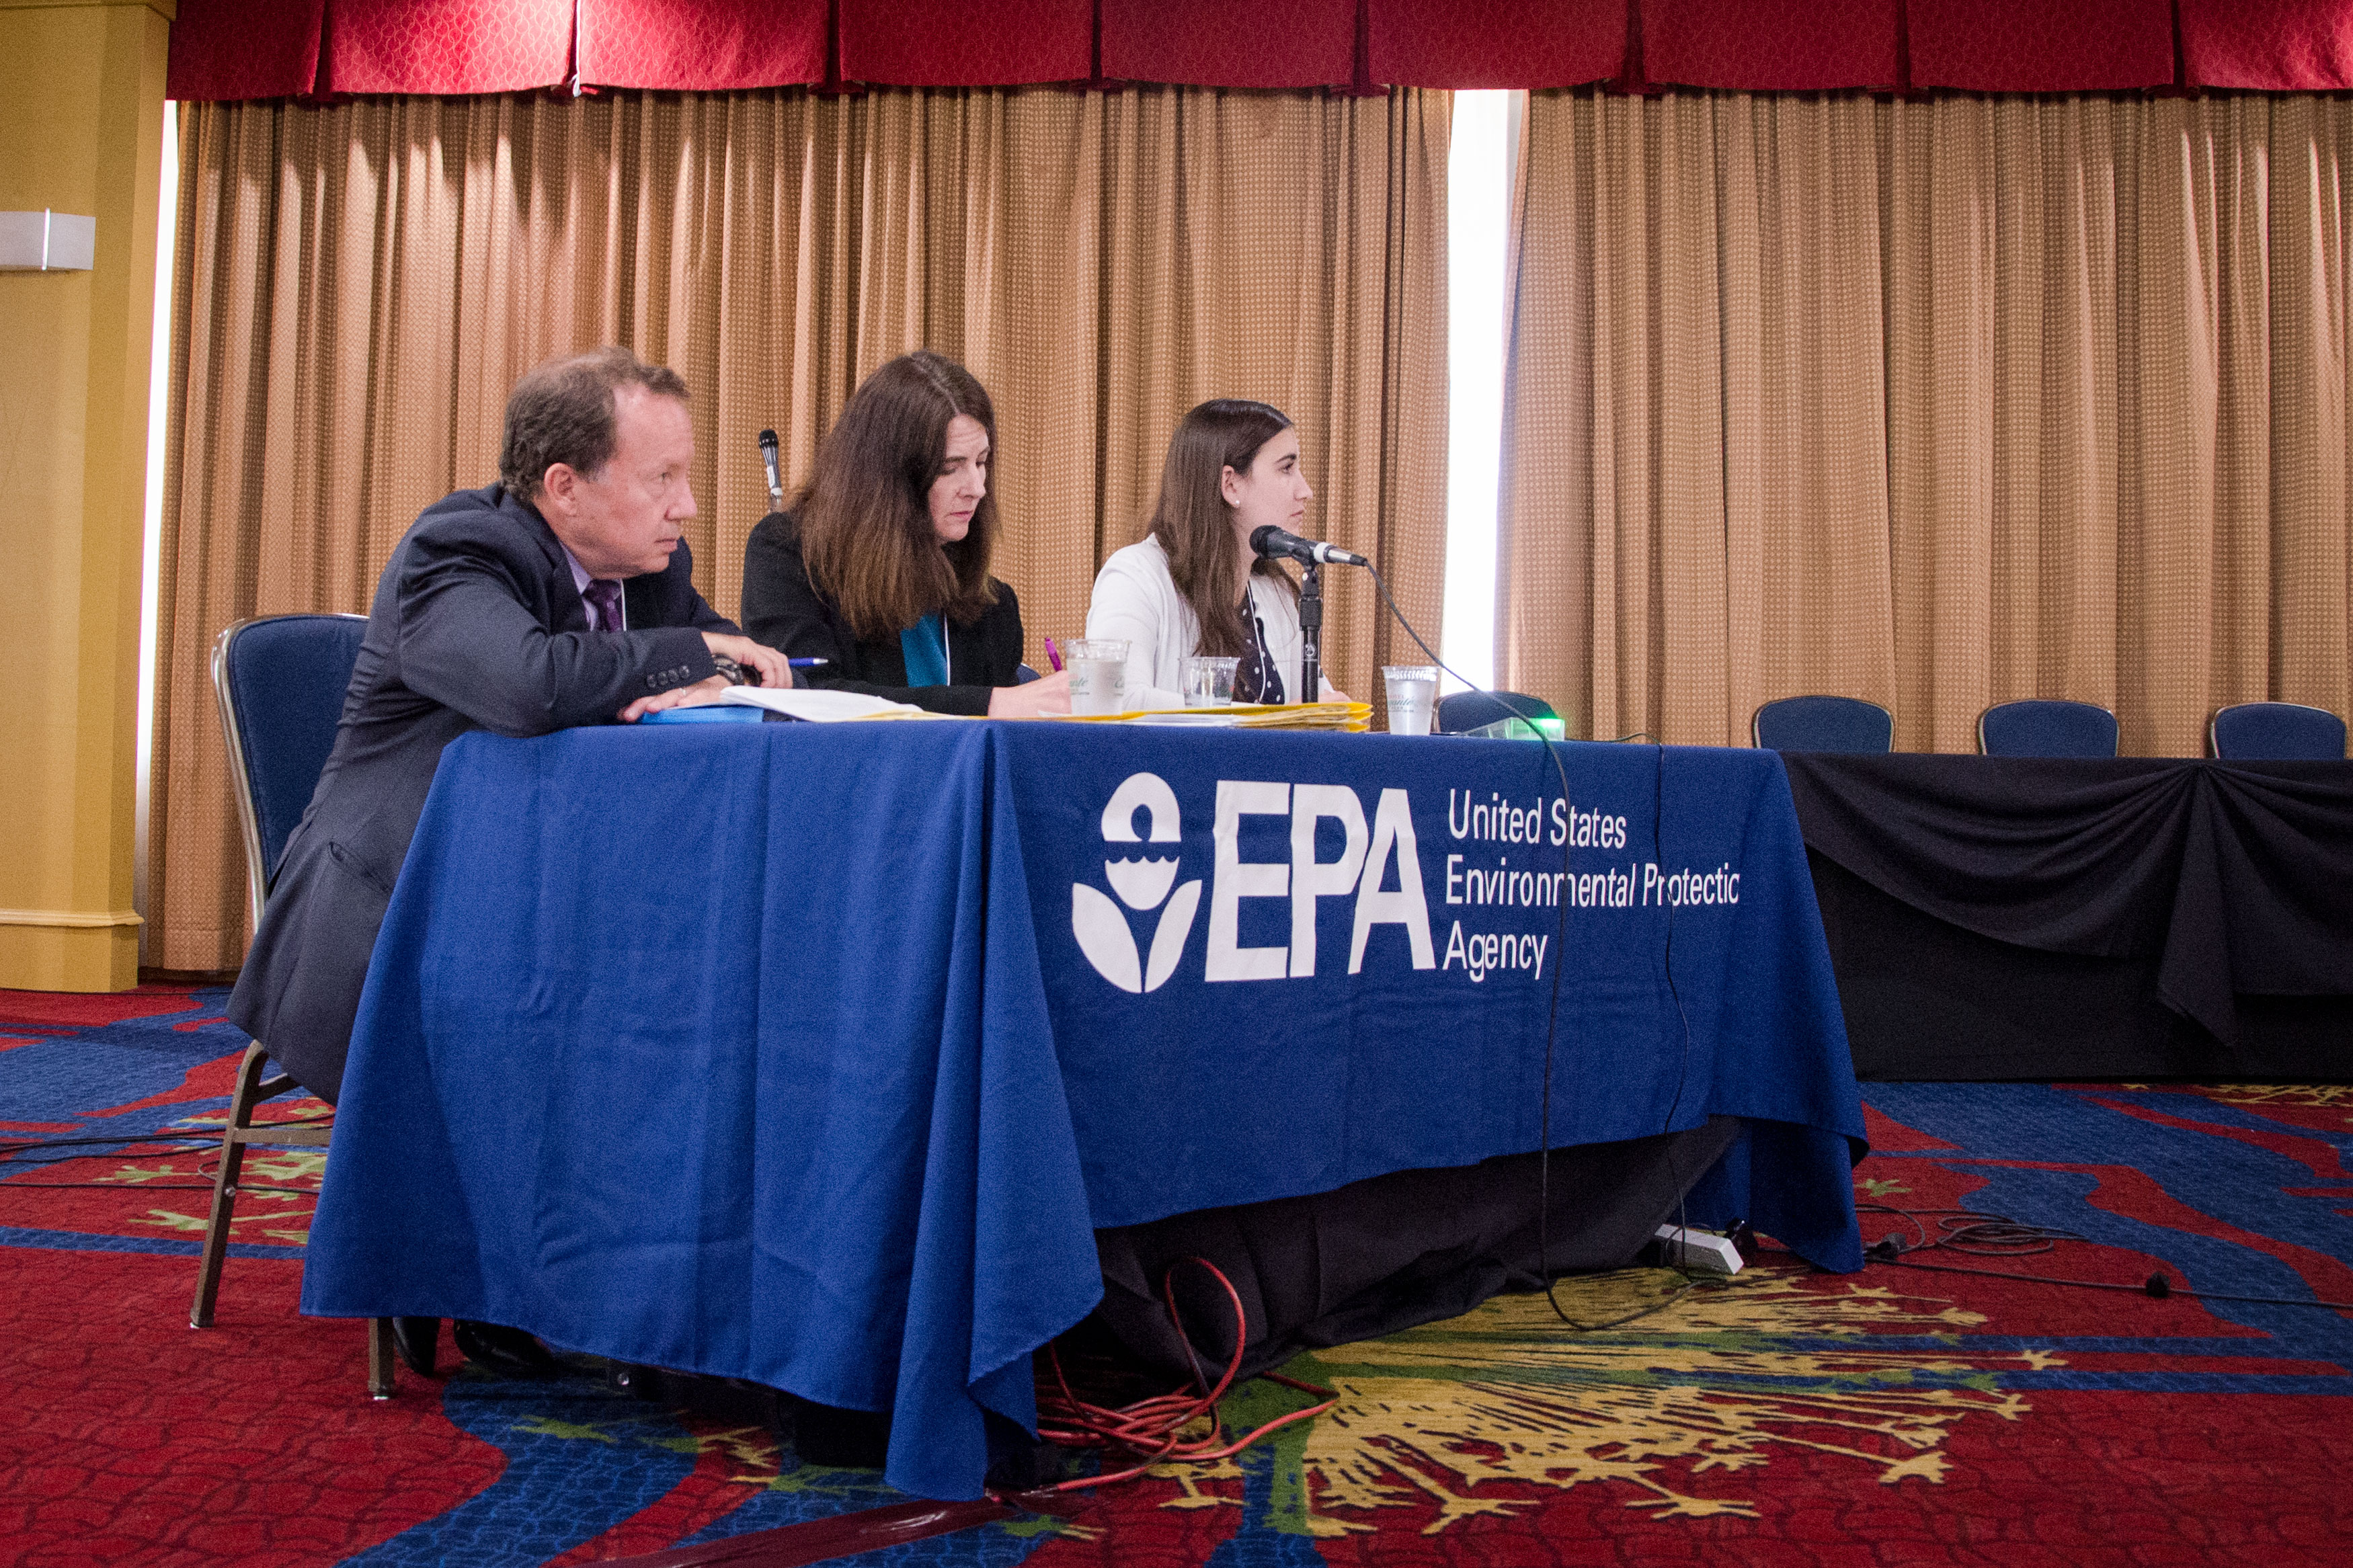 <p>Doug Benevento, regional administrator for EPA's Mountains & Plains Region 8, left, and staff listen to speakers during a PFCscommunity engagement event in Colorado Springs.</p>